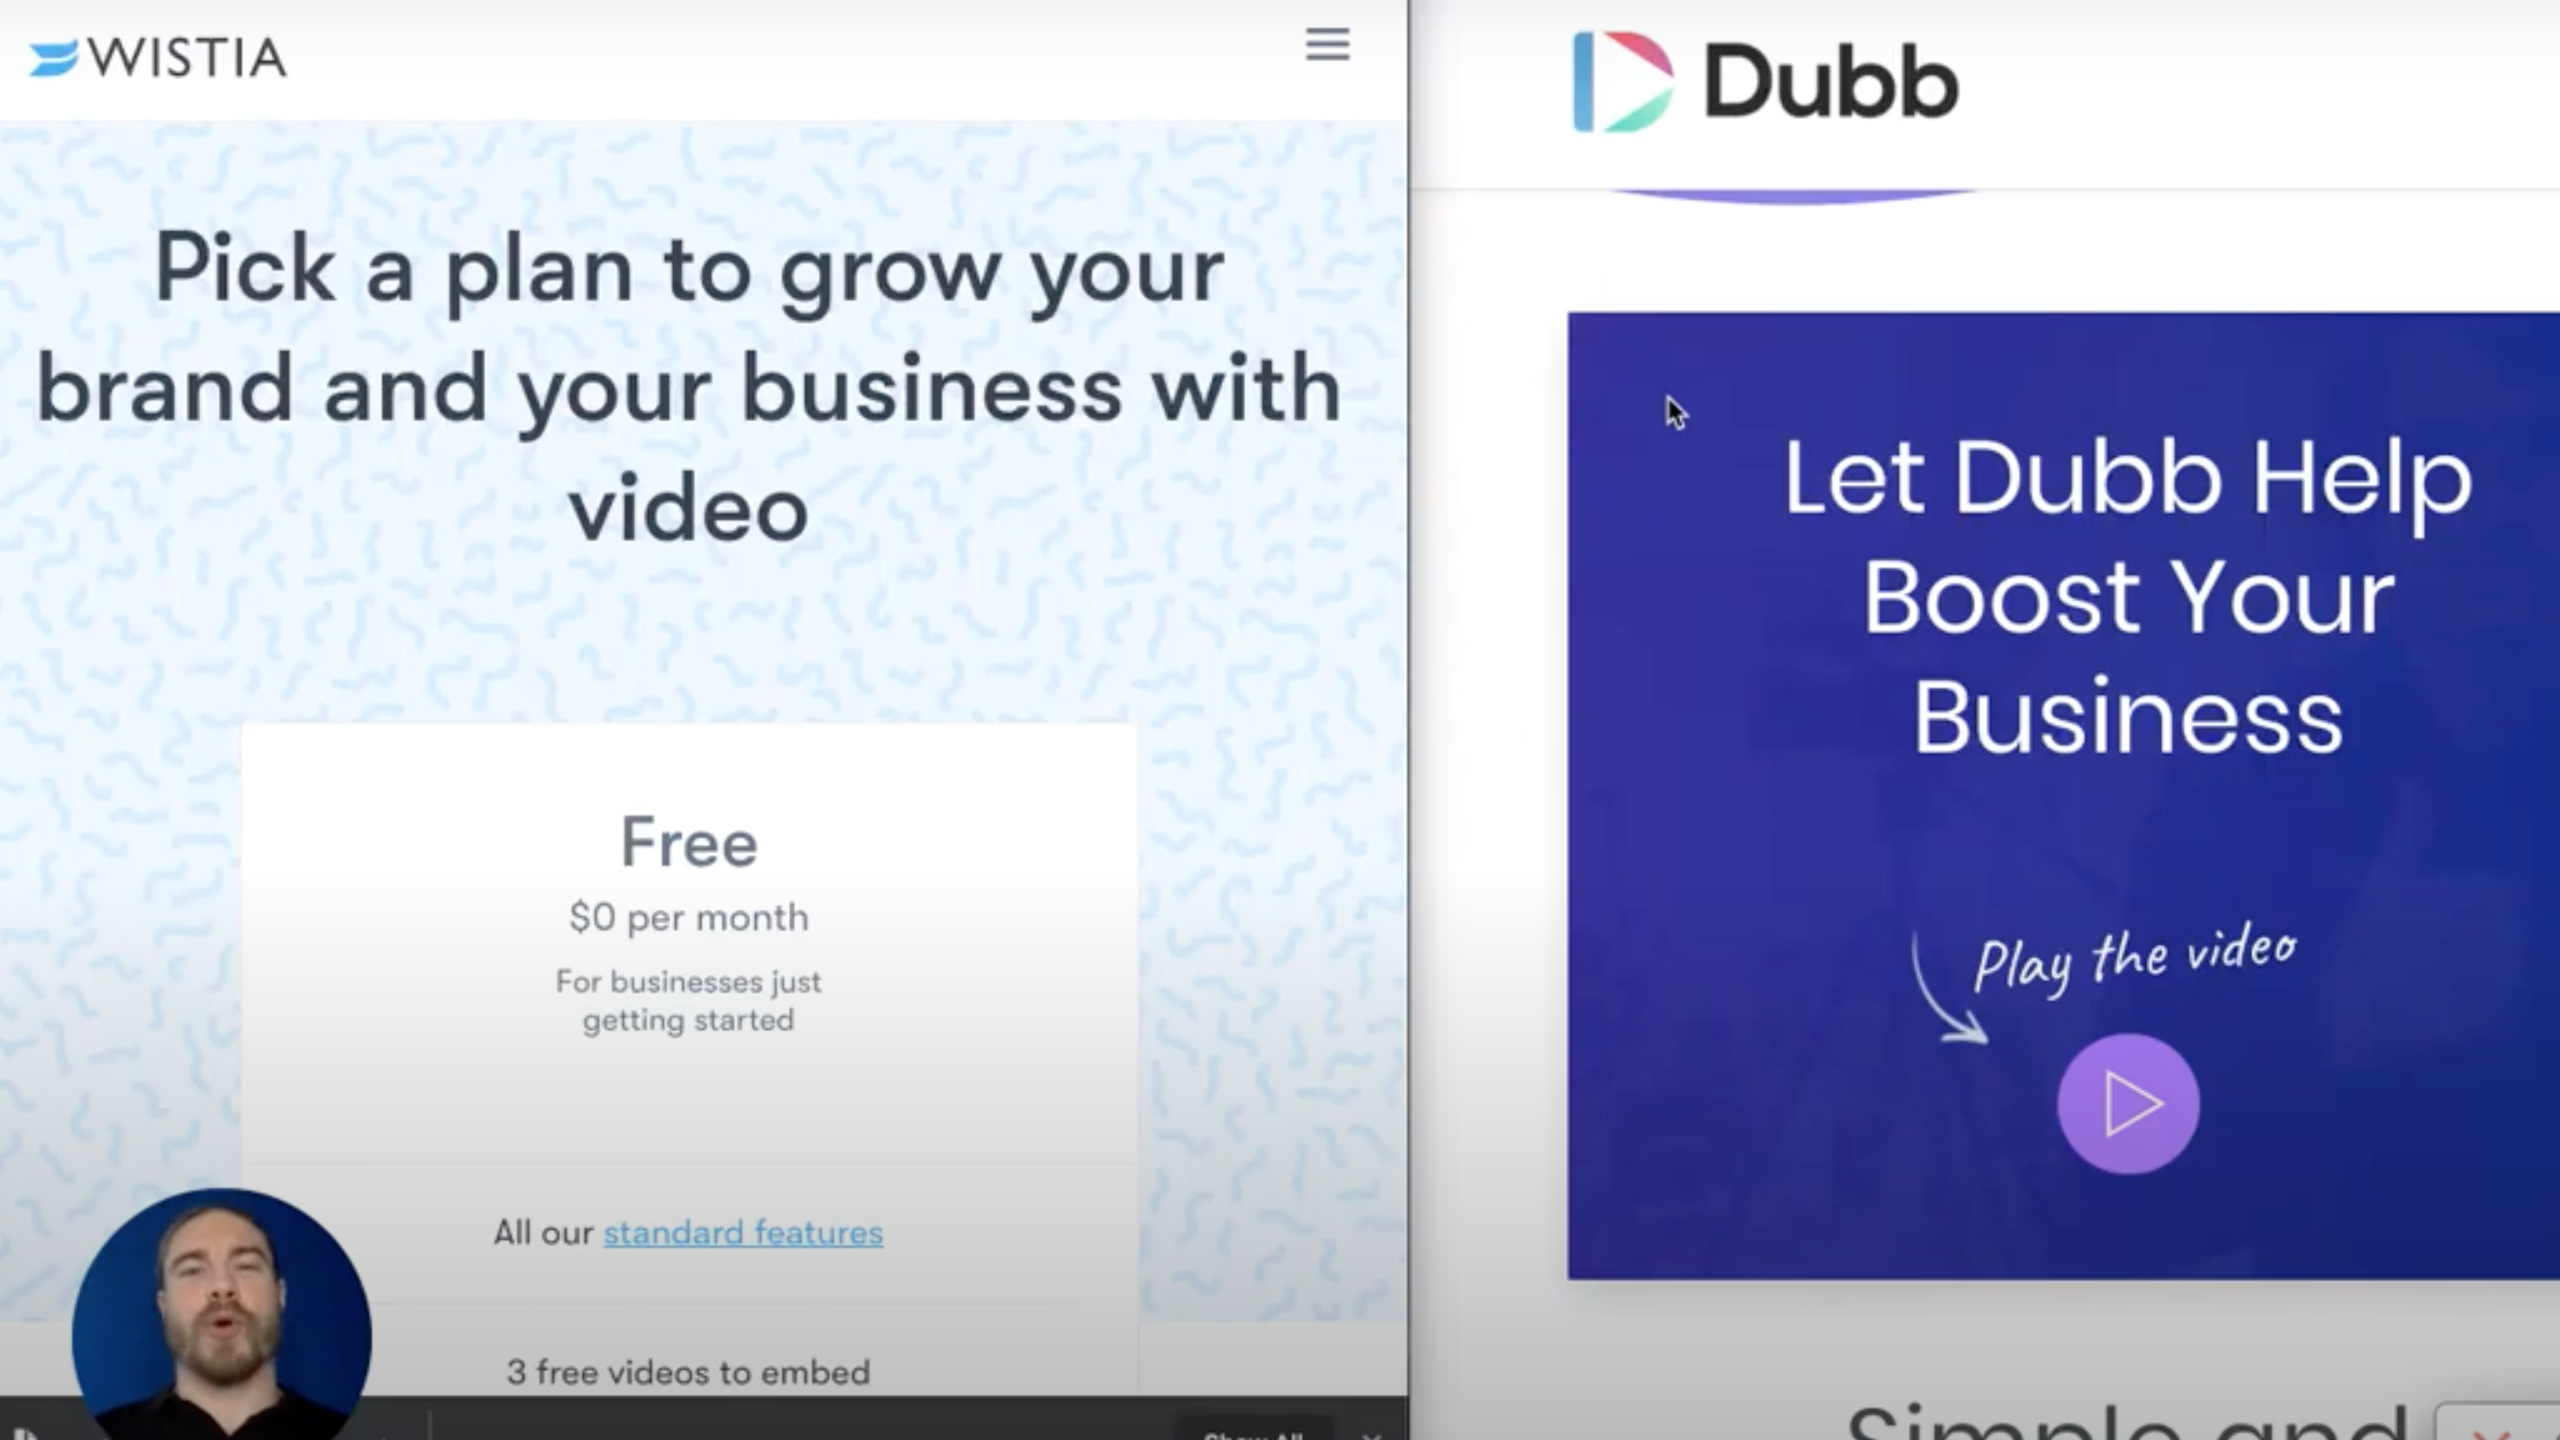 Wistia features compared to Dubb features